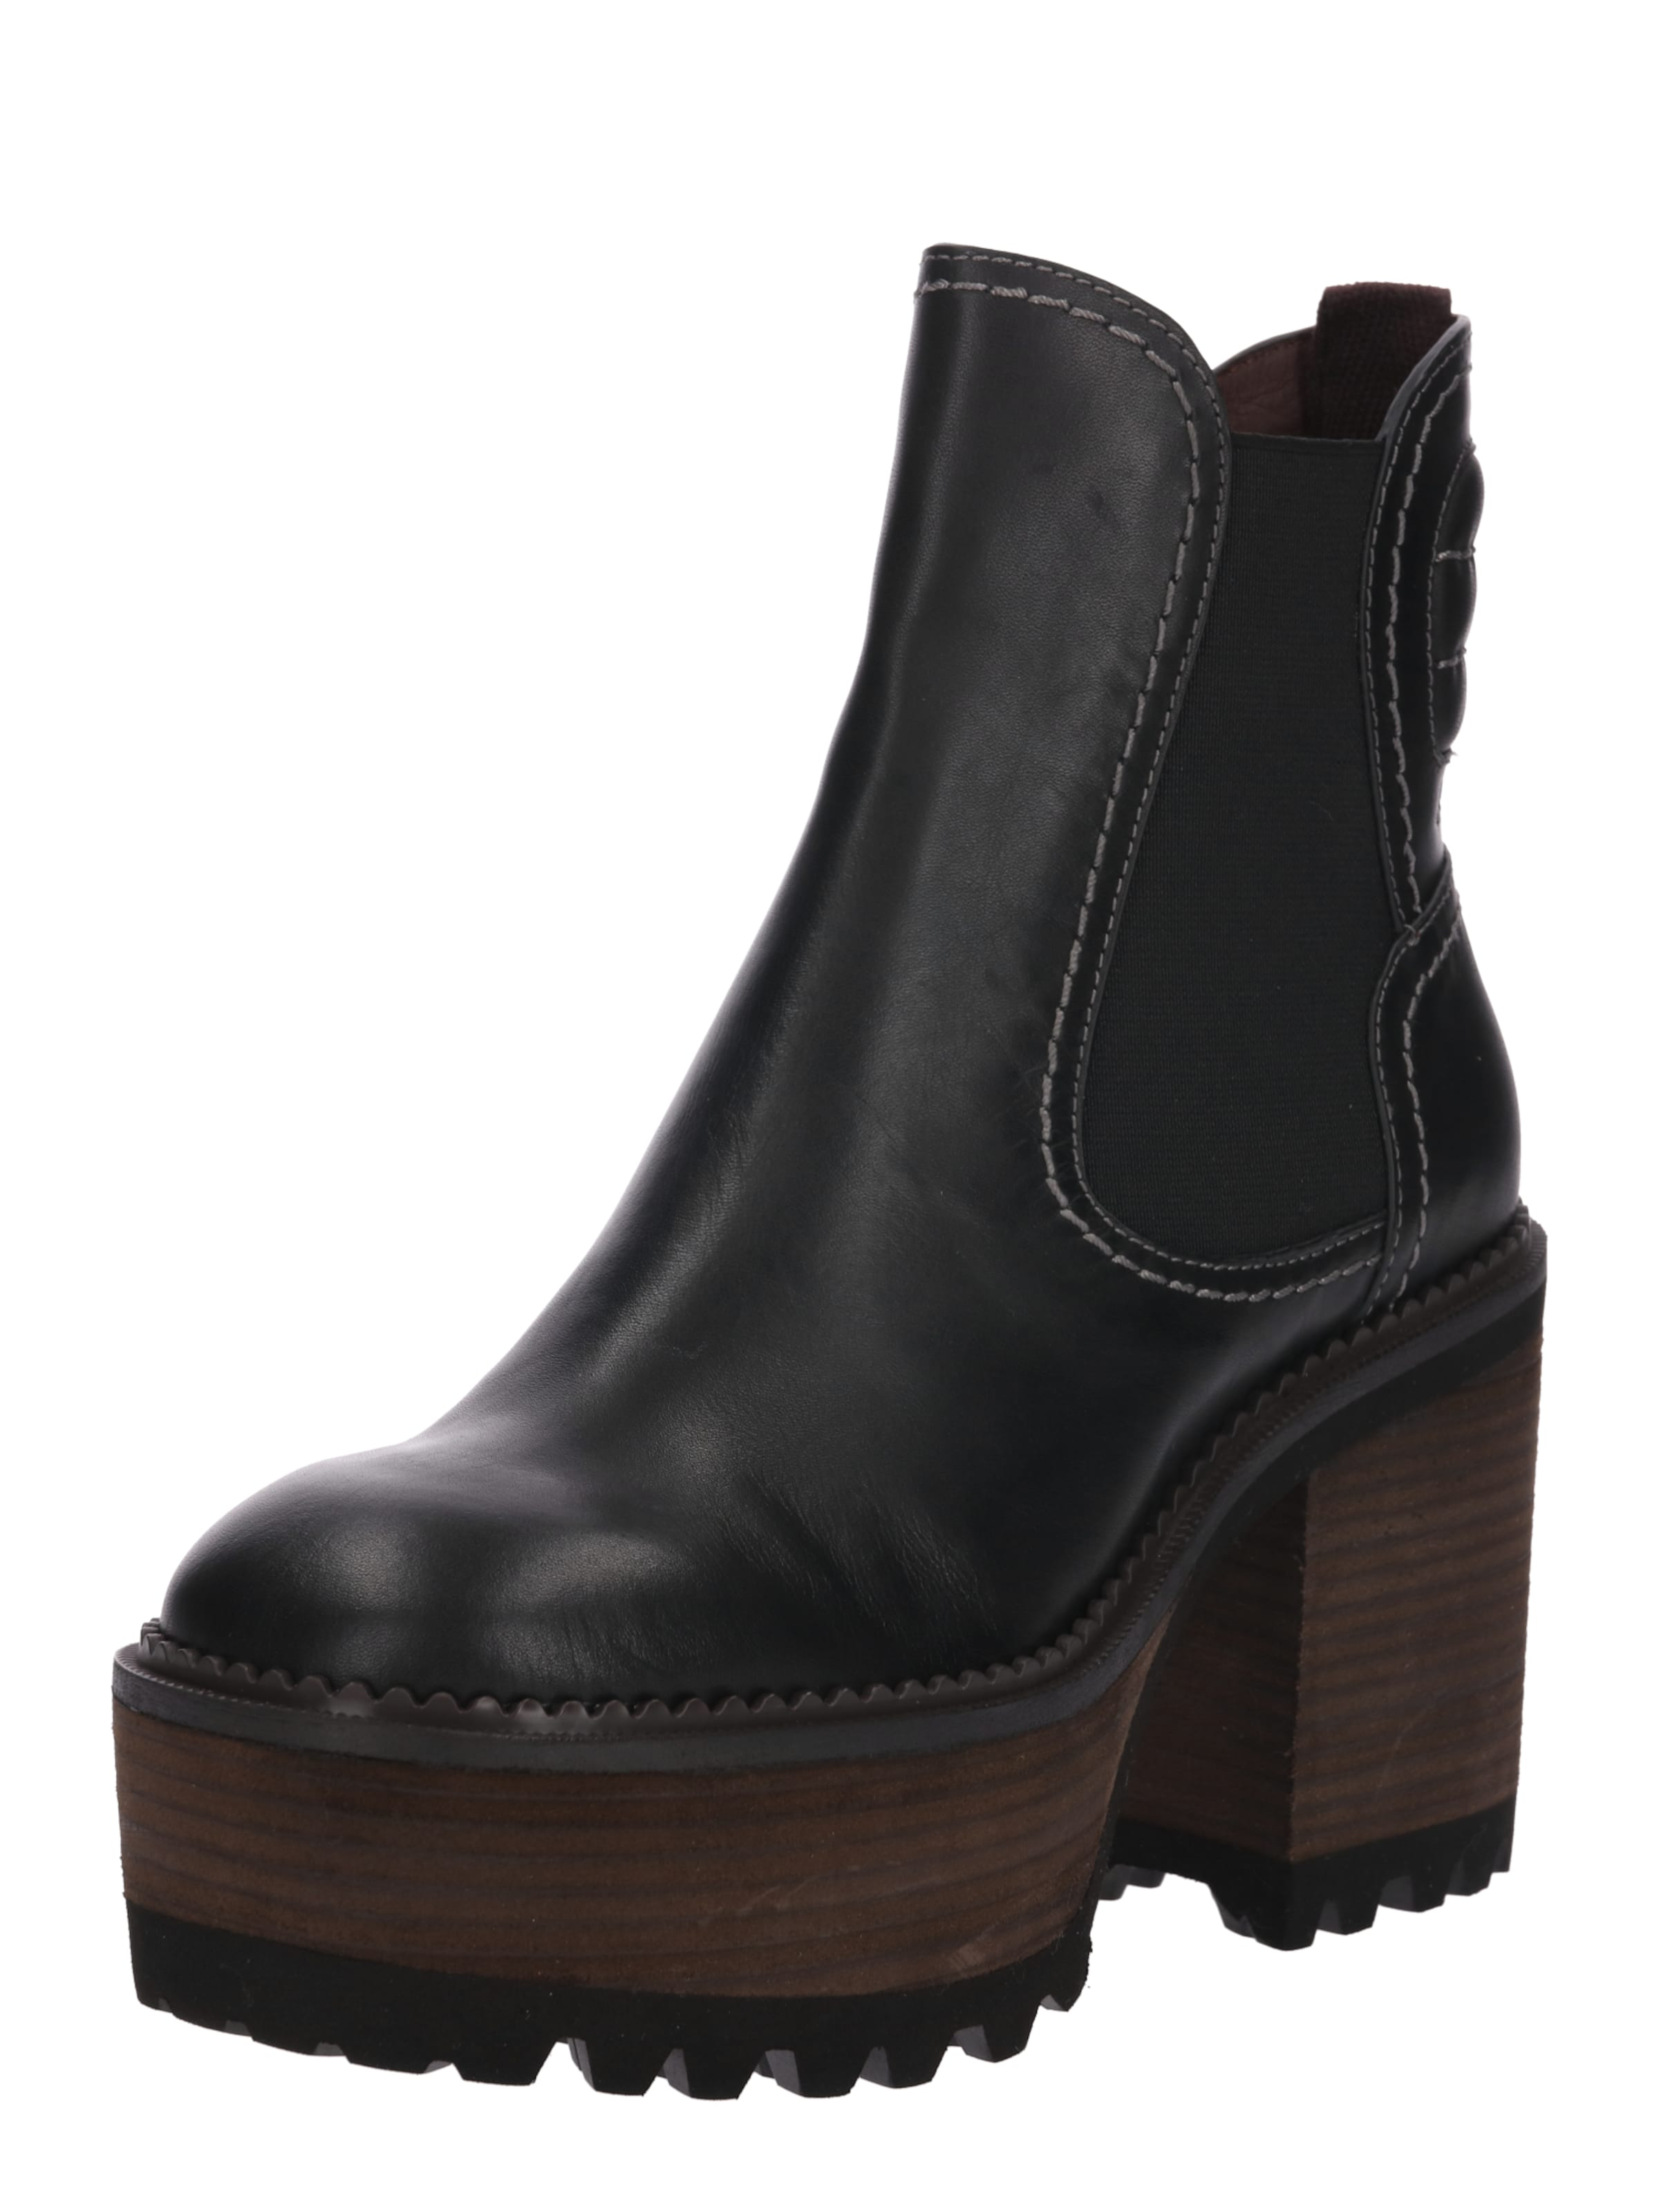 Haltbare Mode billige Schuhe SEE BY CHLOE getragene | Stiefelette Schuhe Gut getragene CHLOE Schuhe a8ce37